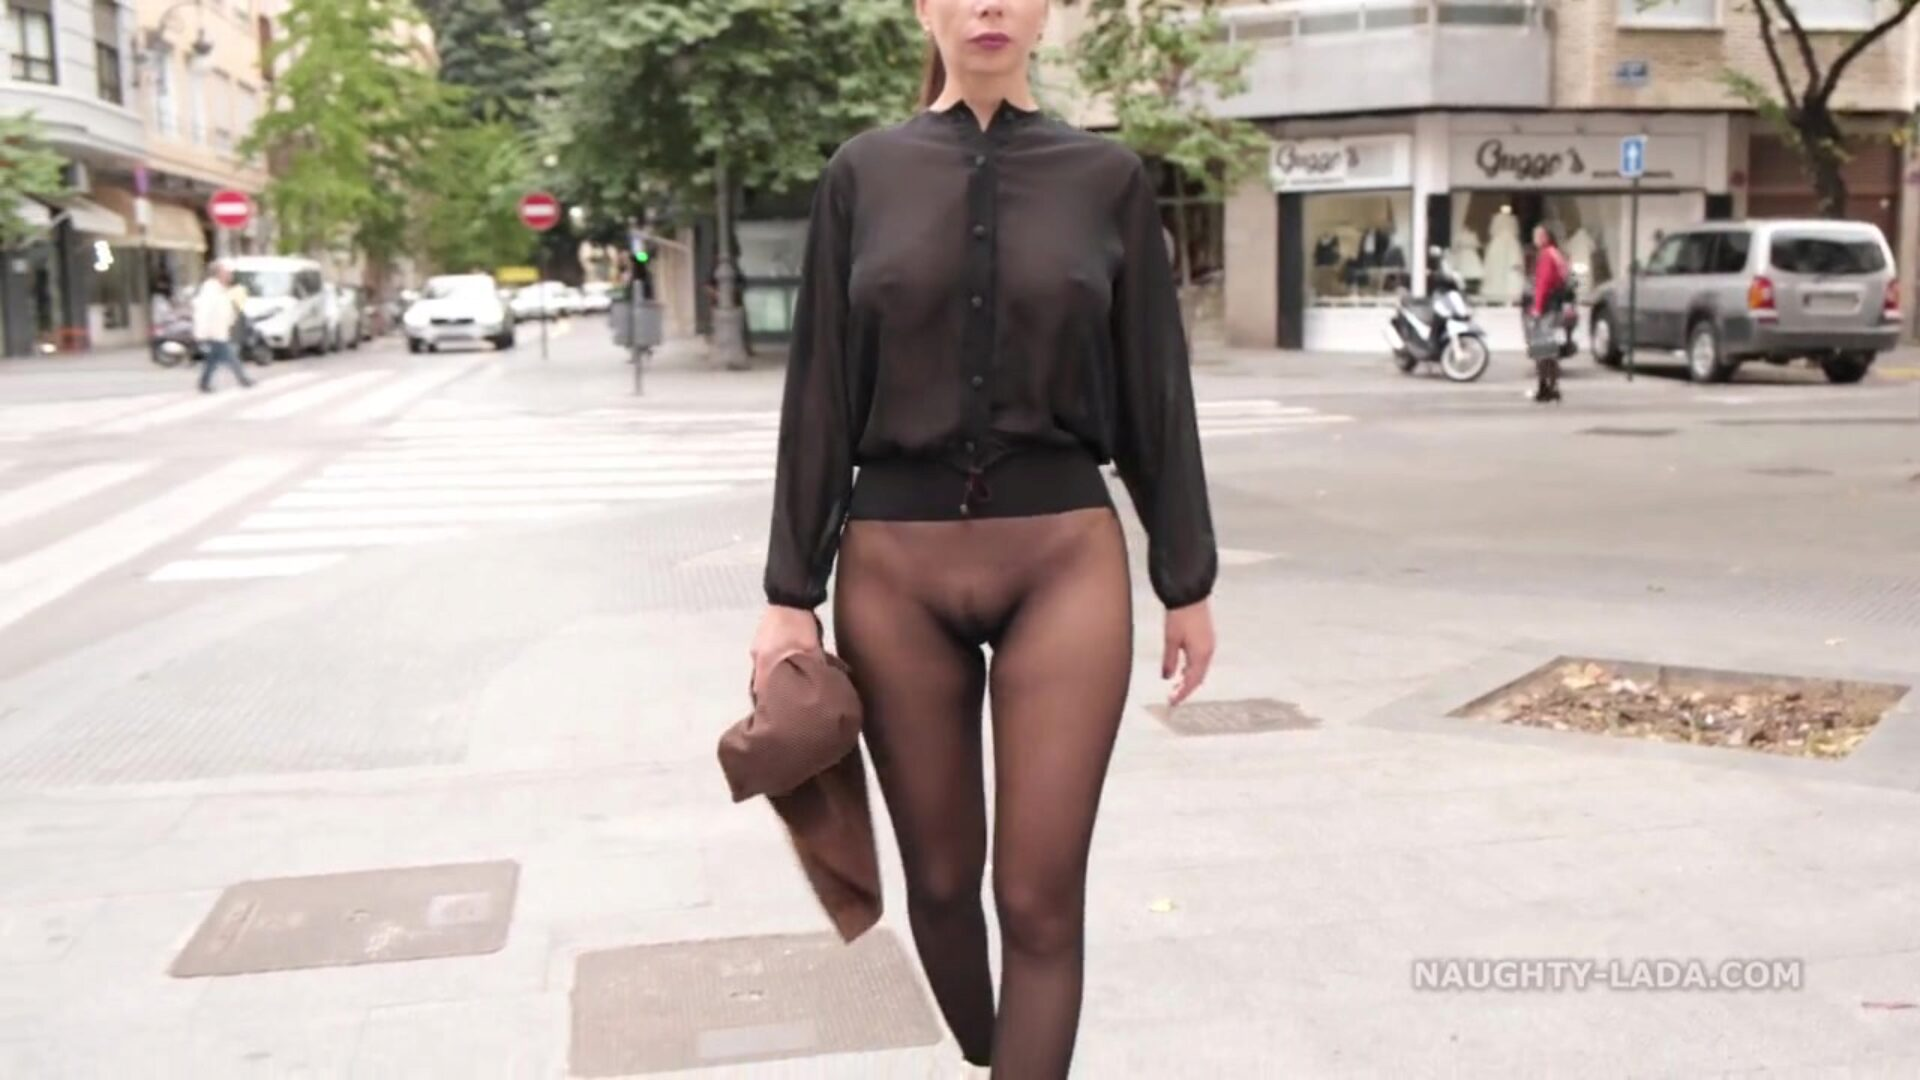 No skirt seamless hose in public That day I walked the streets wearing seamless pantyhose and semitransparent half-top I luved witnessing people respond to my outfit You can too acquire it in the utter version of this movie on my site